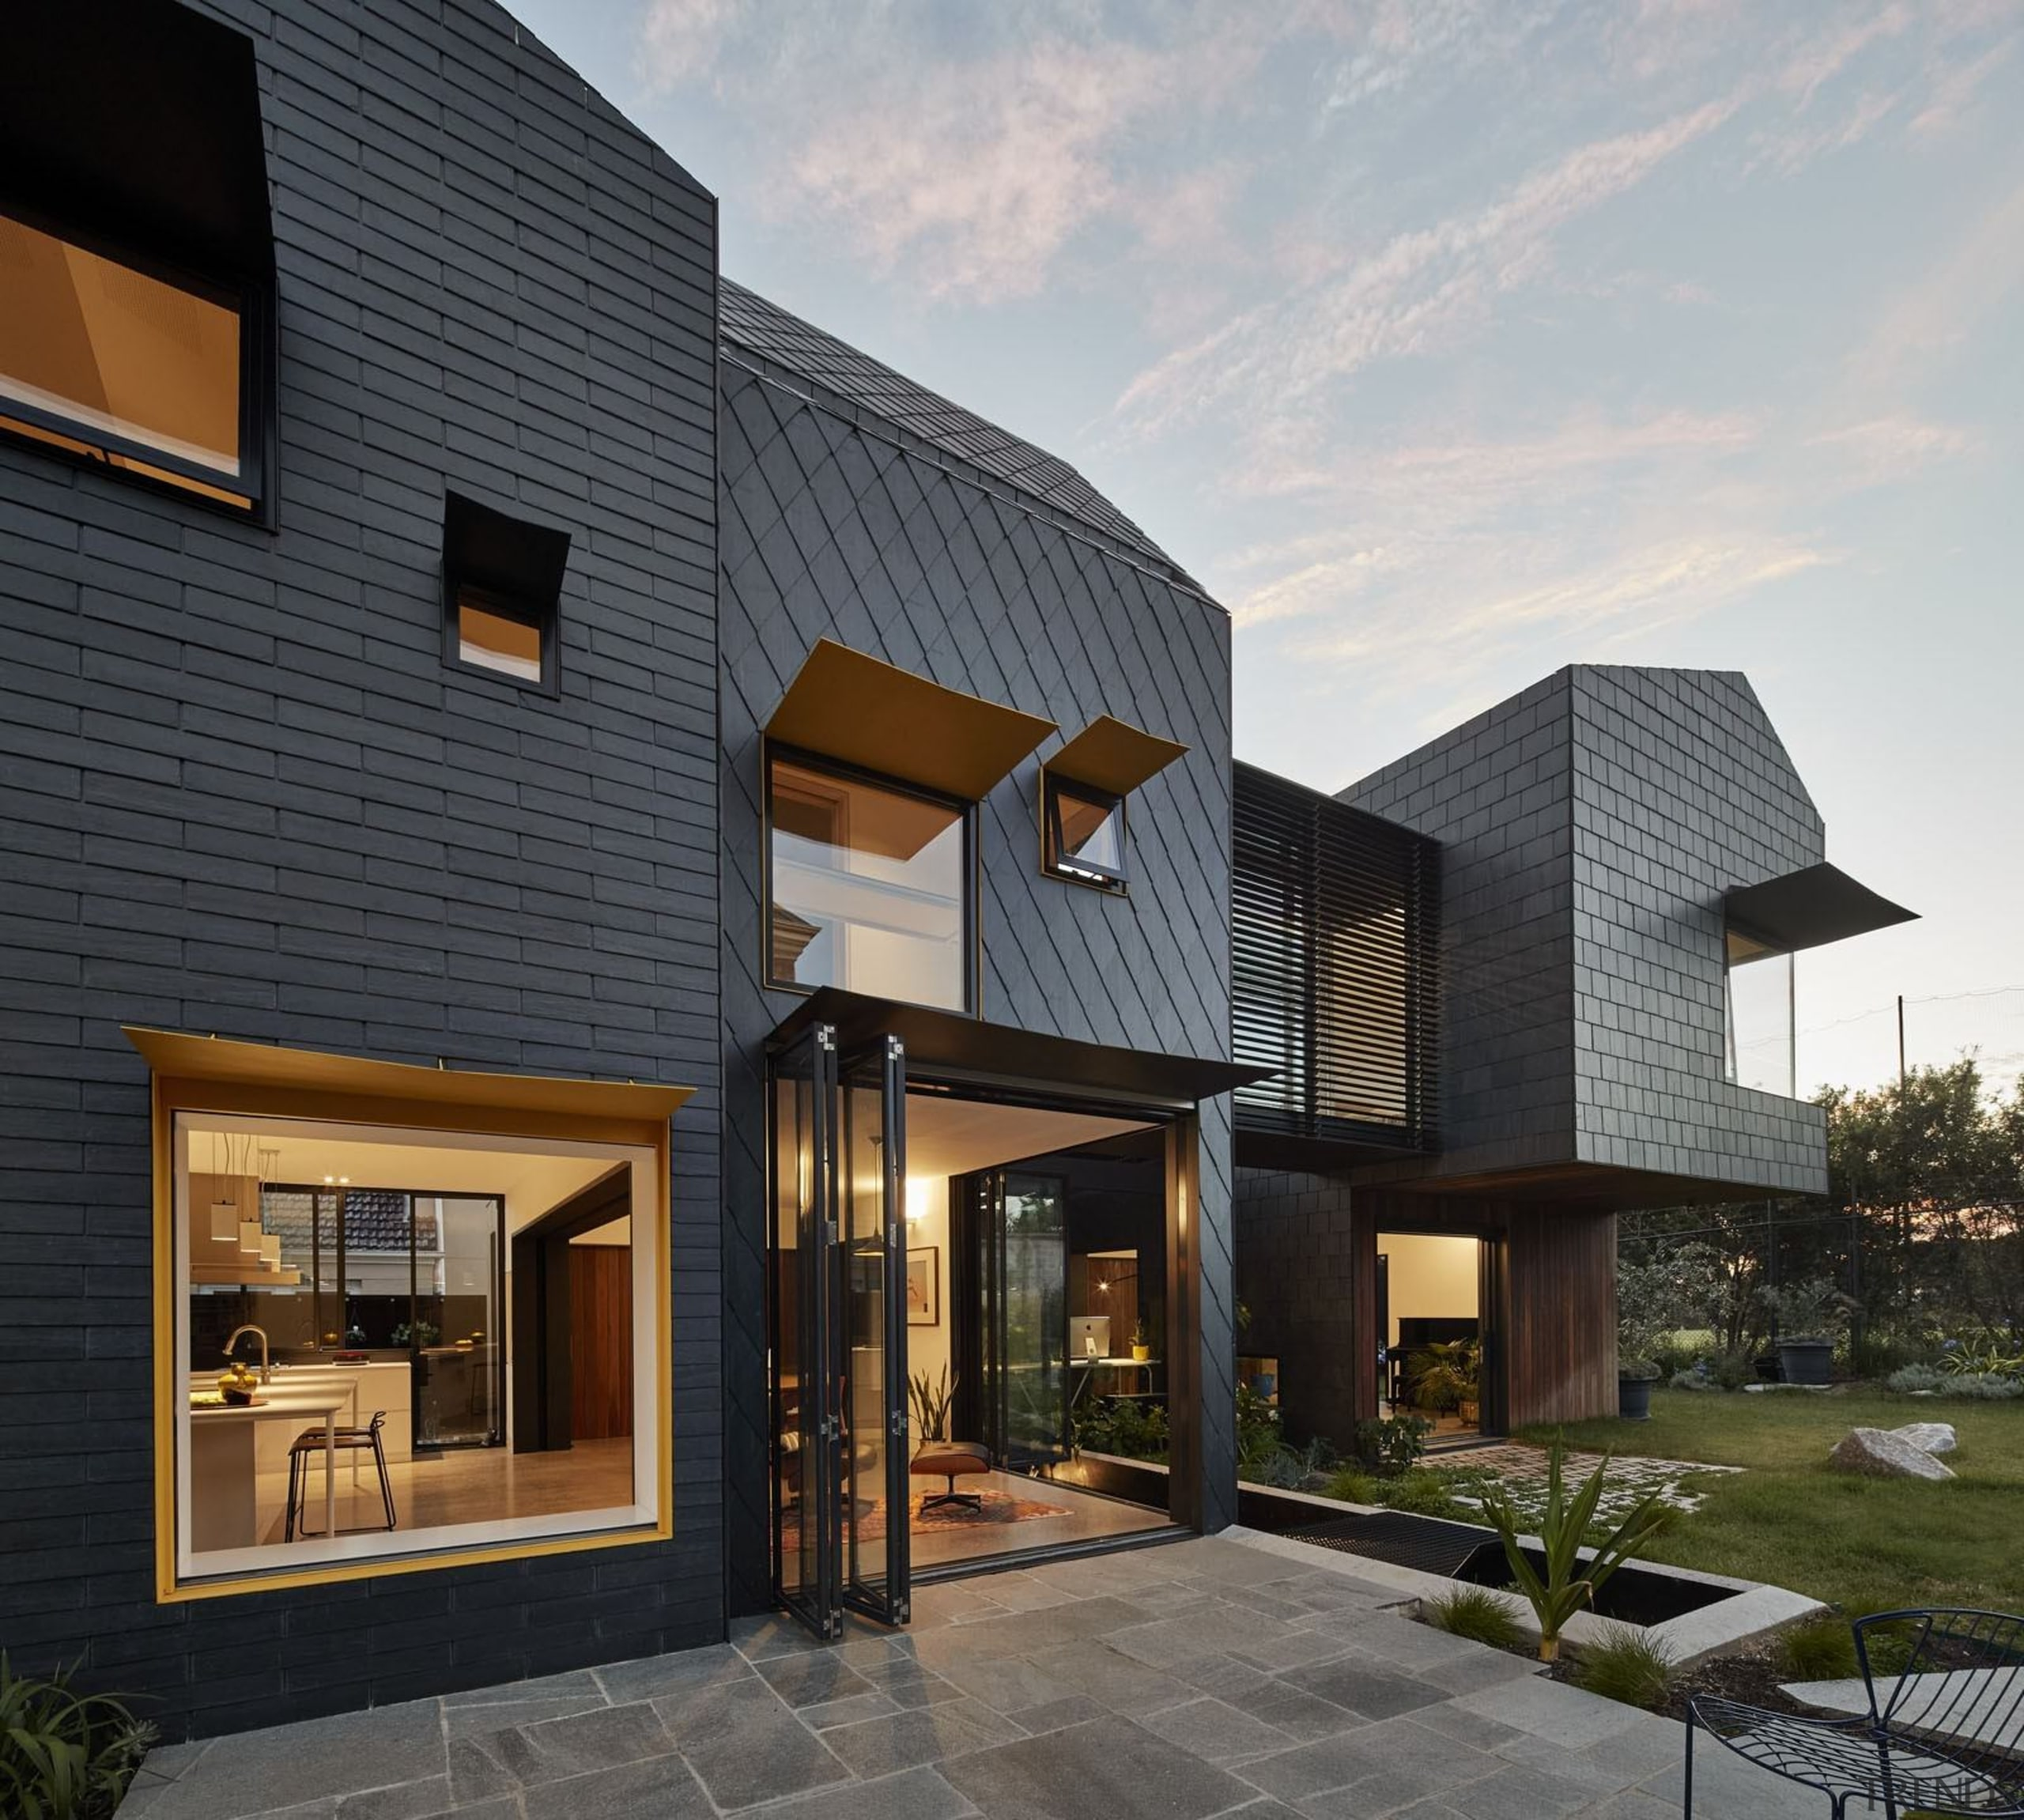 Architect: Austin Maynard ArchitectsPhotography by Peter Bennetts architecture, building, elevation, estate, facade, home, house, property, real estate, residential area, roof, siding, black, gray